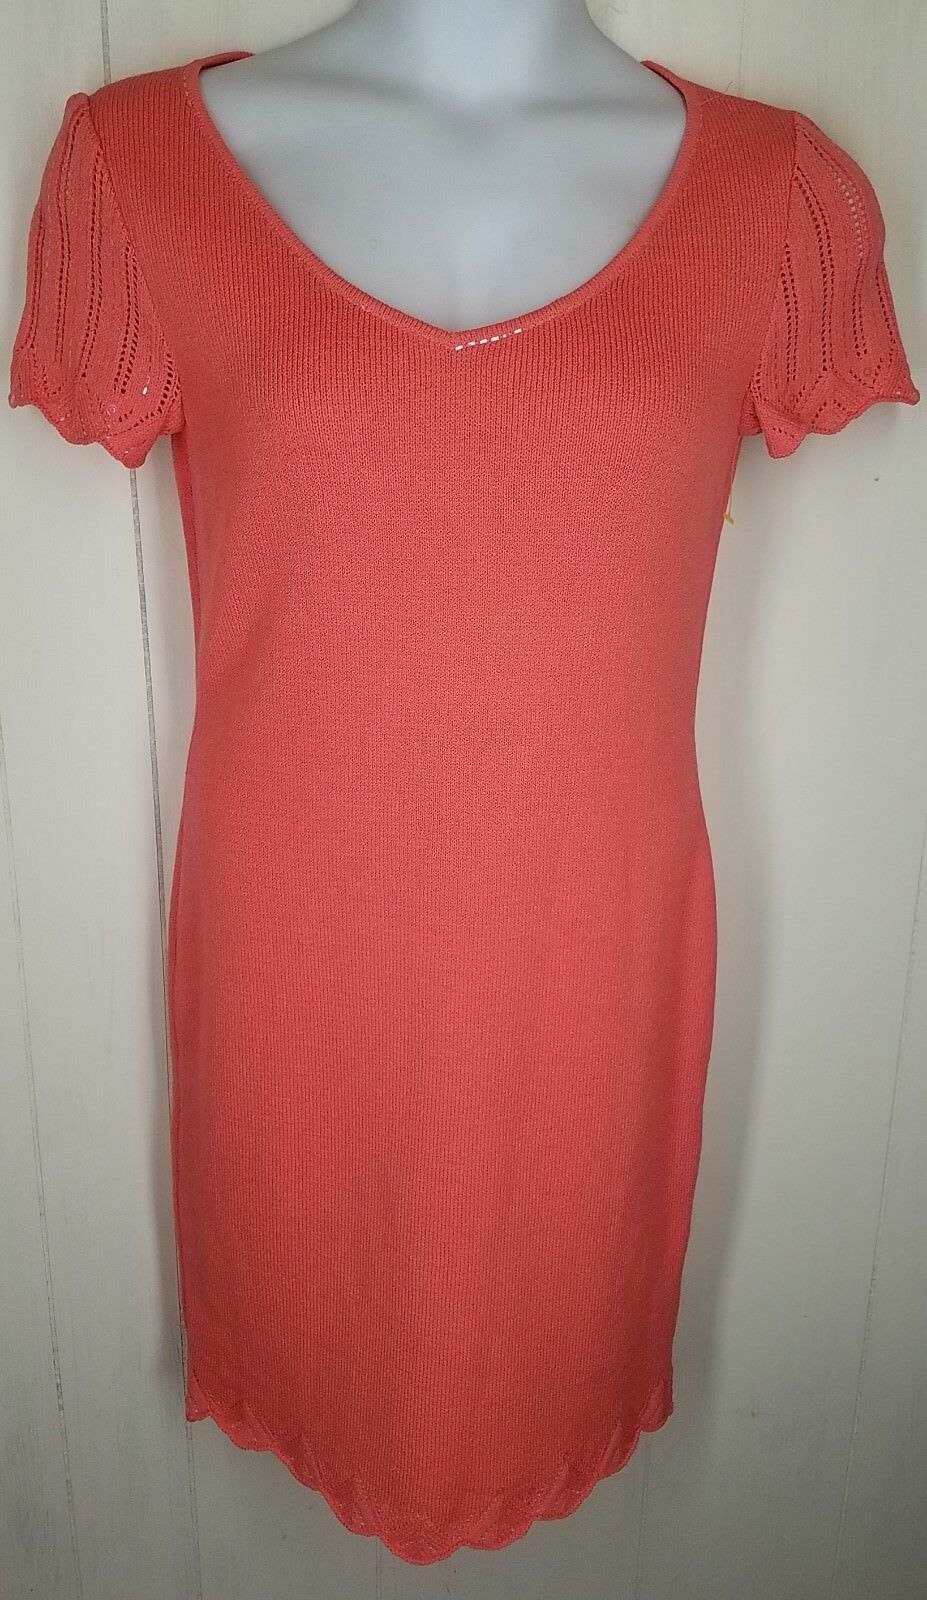 St John Evening Dress size 6 salmon cap cap cap sleeve paillettes santana knit womens d6b6f9